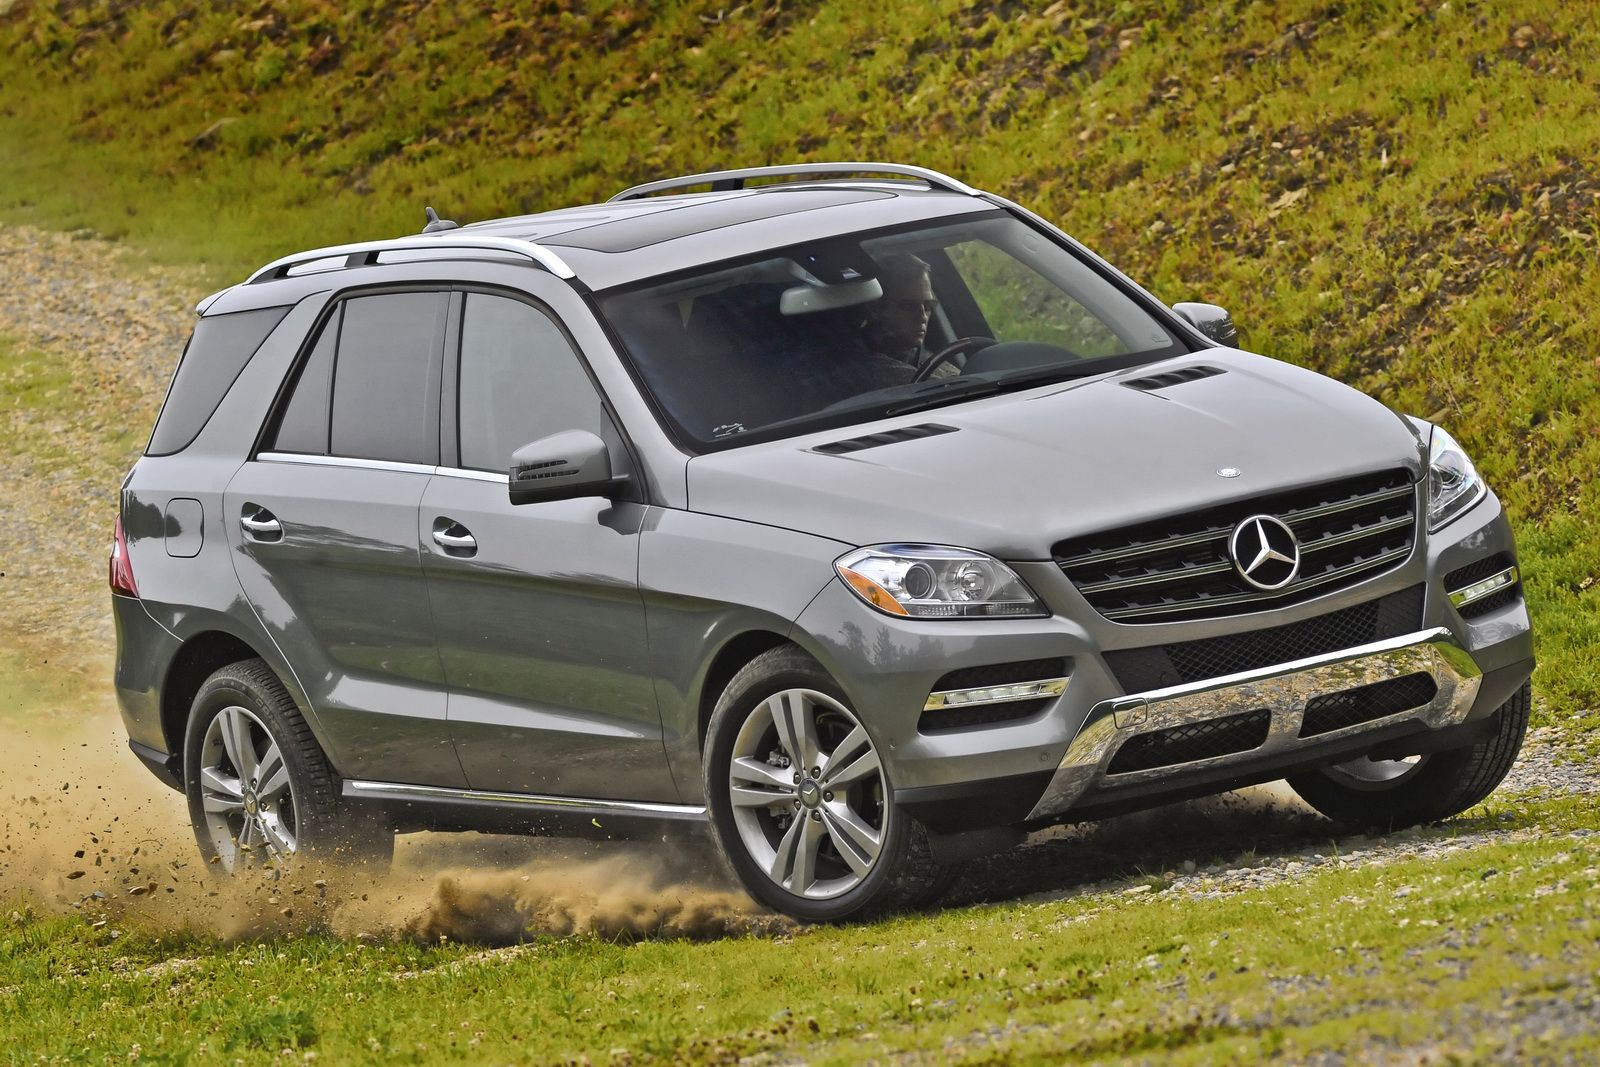 Mercedes Ml350 Benz Mercedes Benz Mercedes